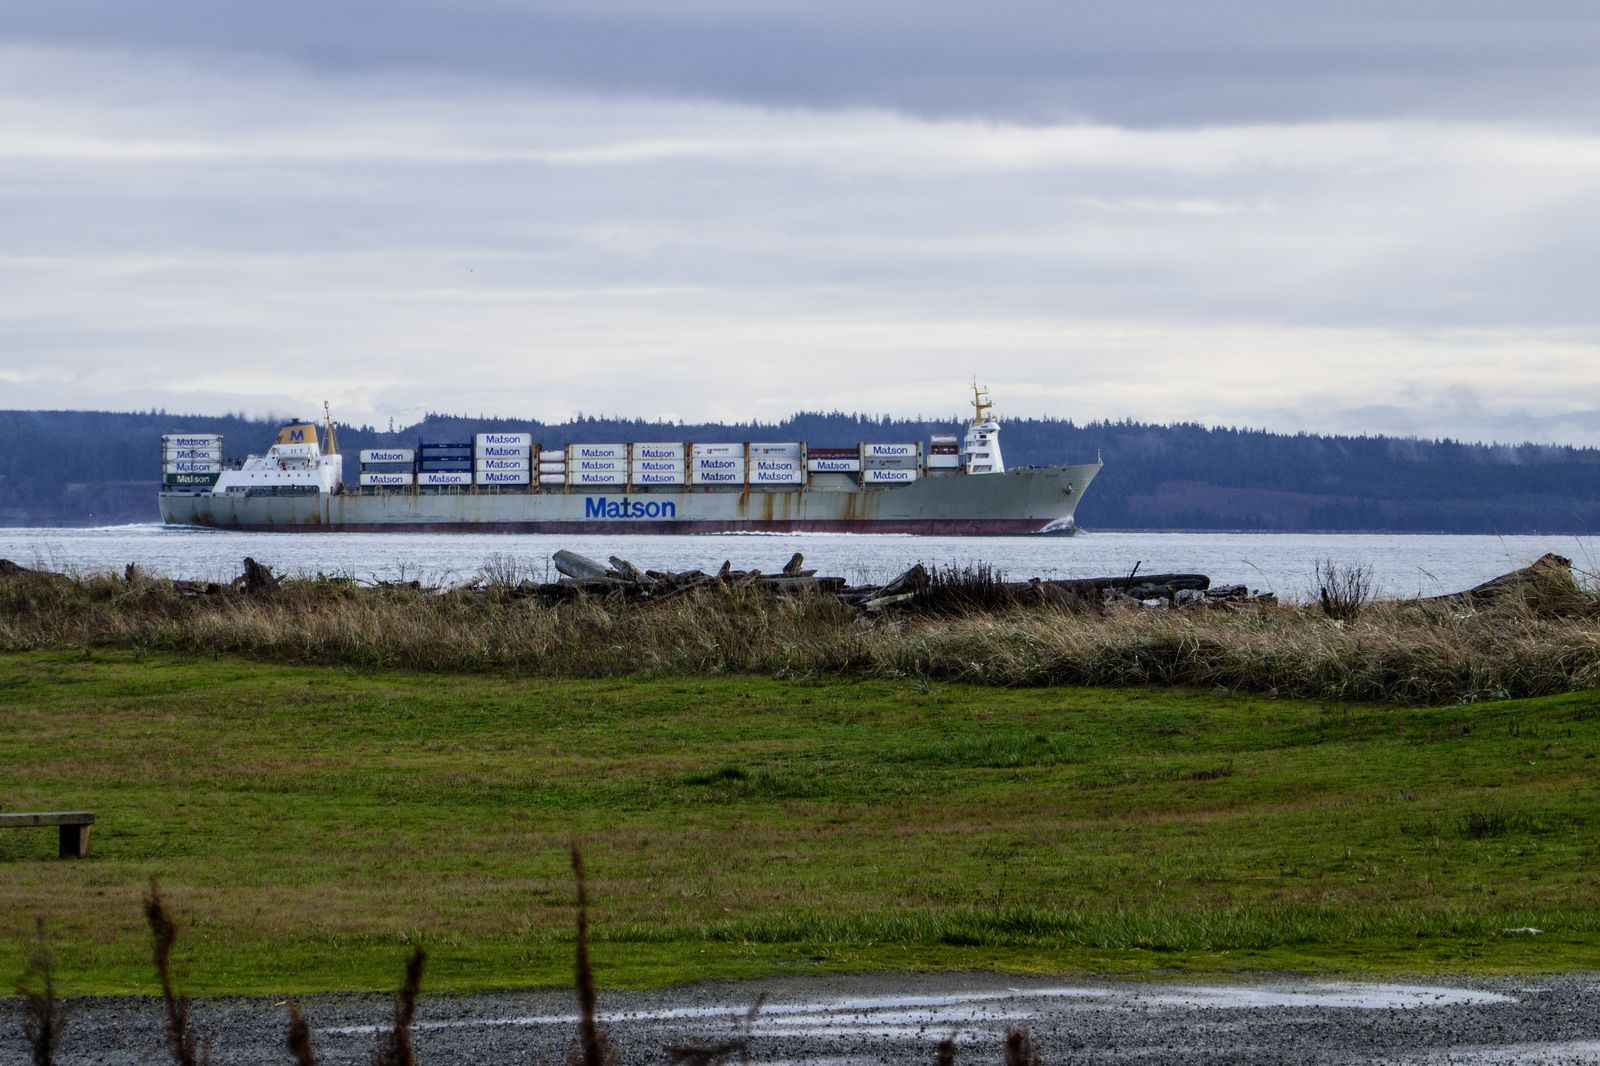 Some of the shipping heading for Seattle or Tacoma harbor